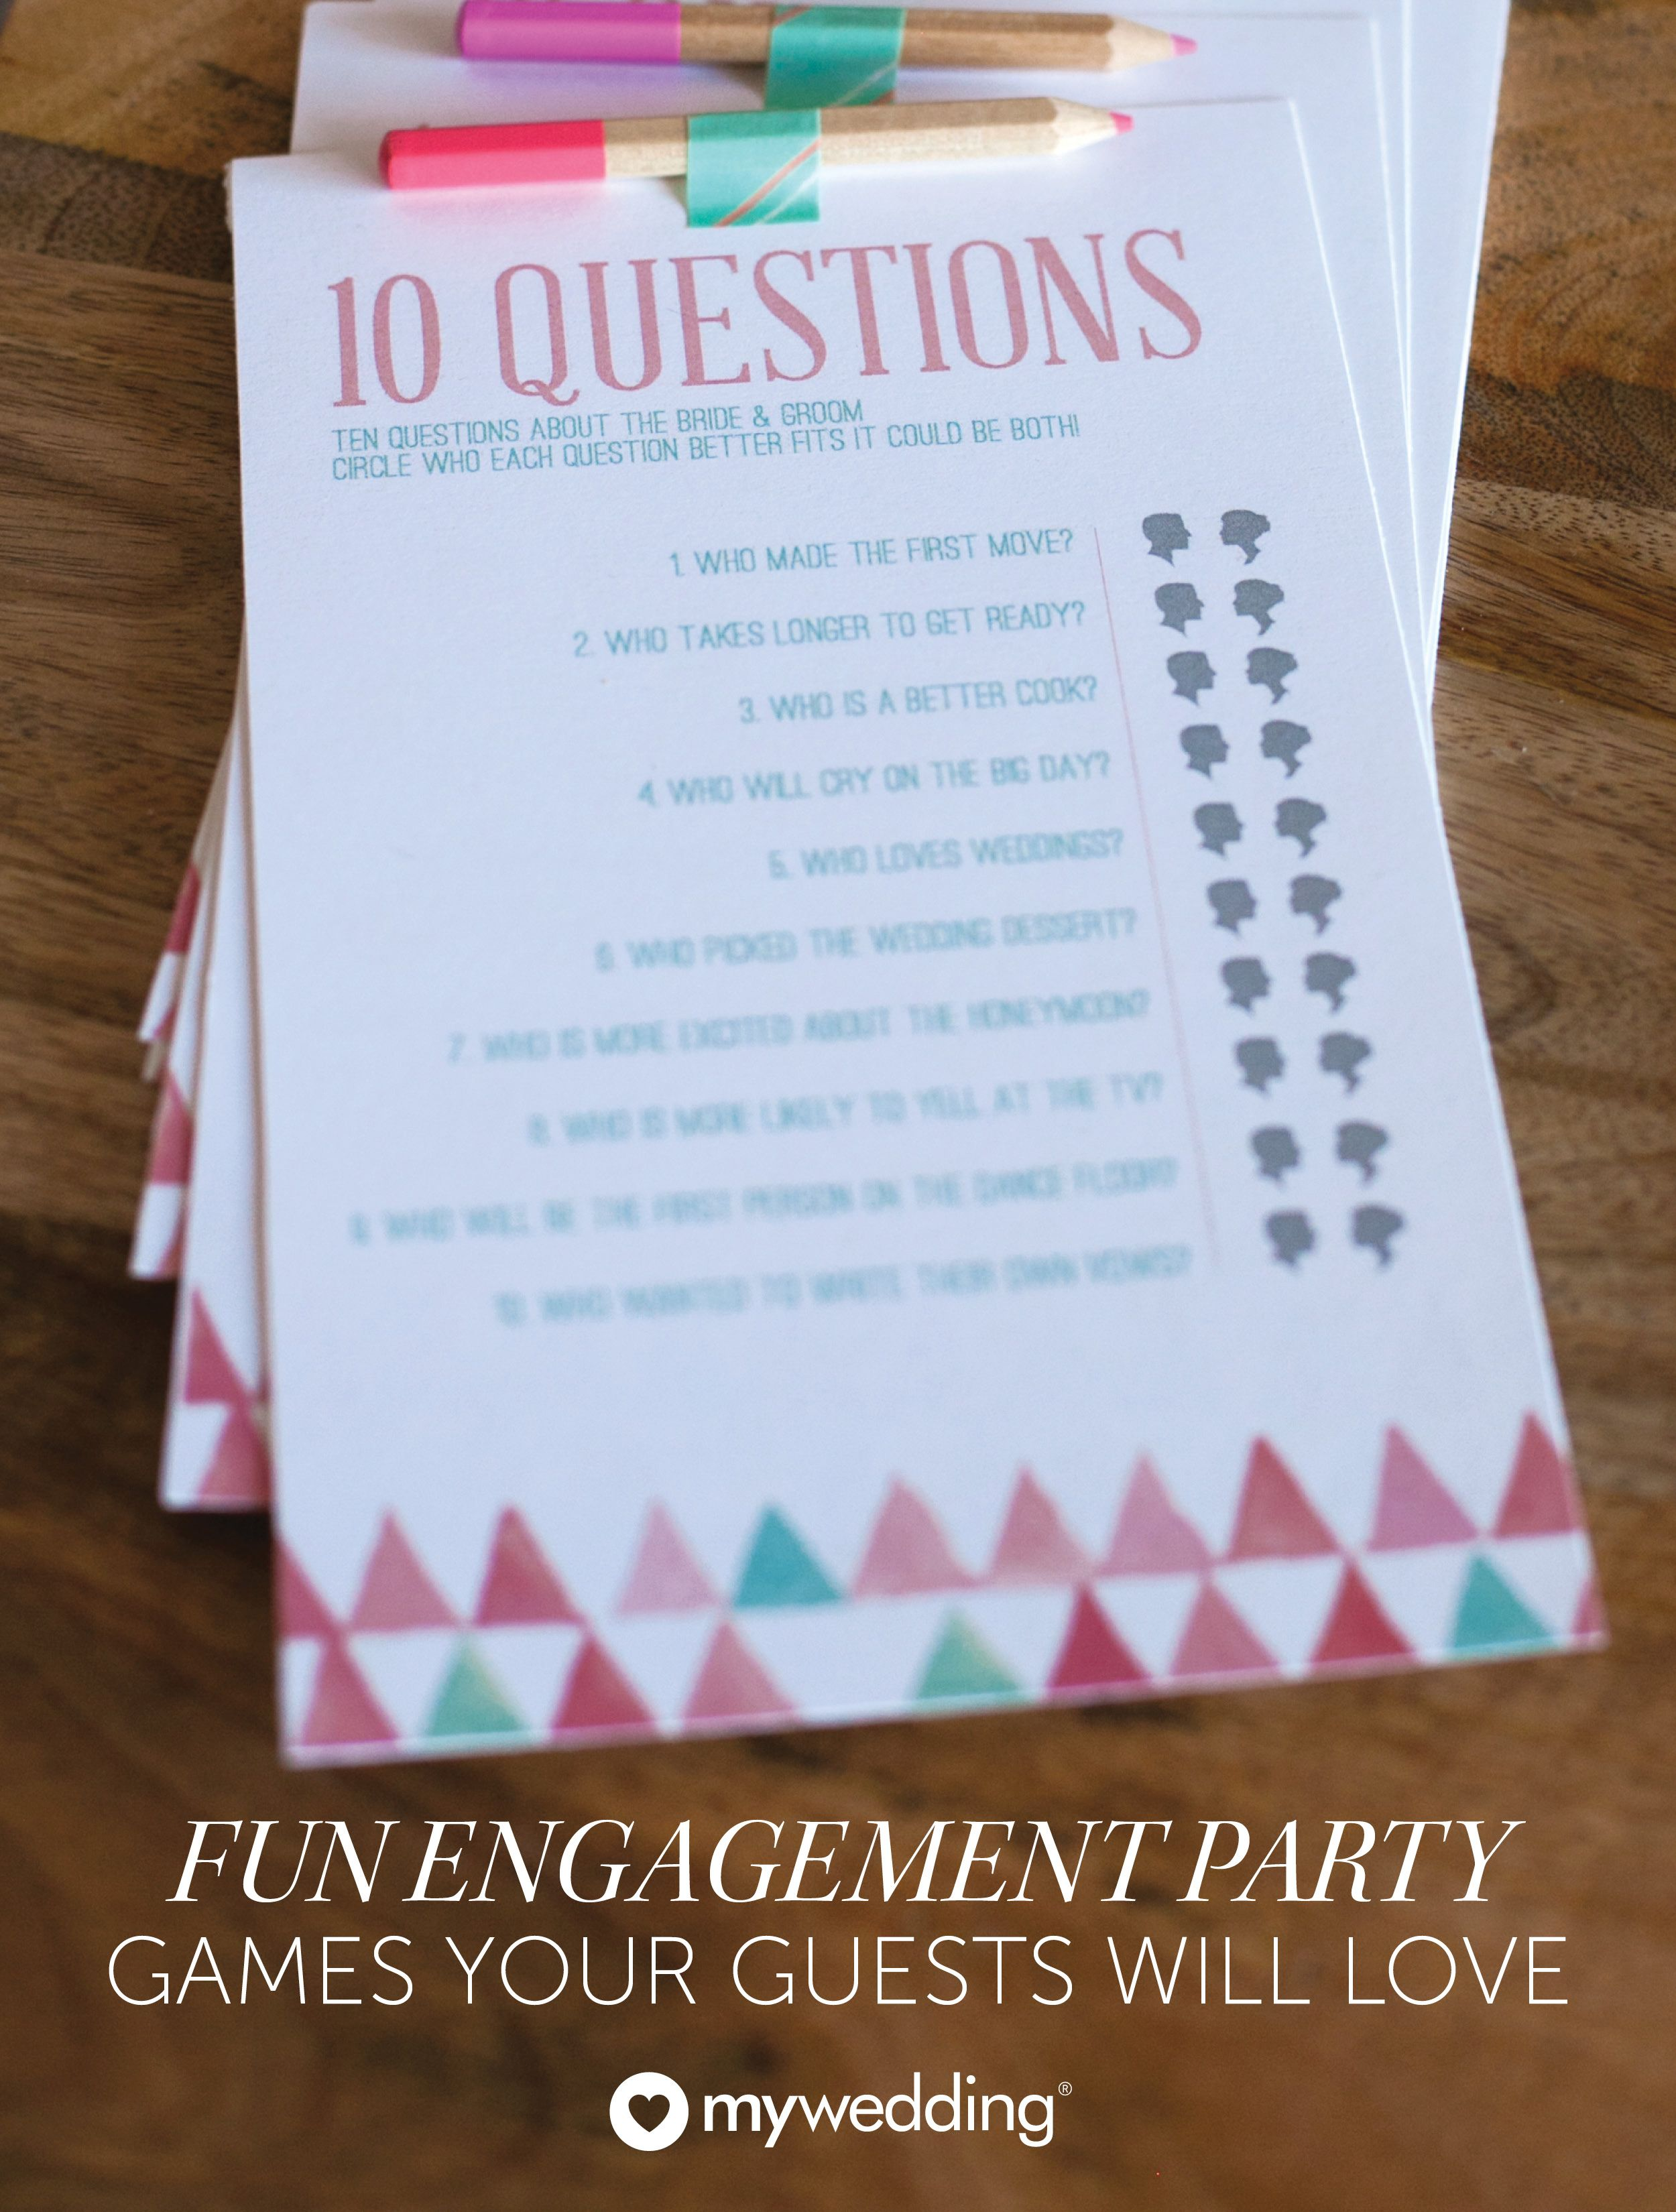 Fun Engagement Party Games Your Guests Will Want To Play Mywedding Engagement Party Games Fun Engagement Party Engagement Party Games Printables